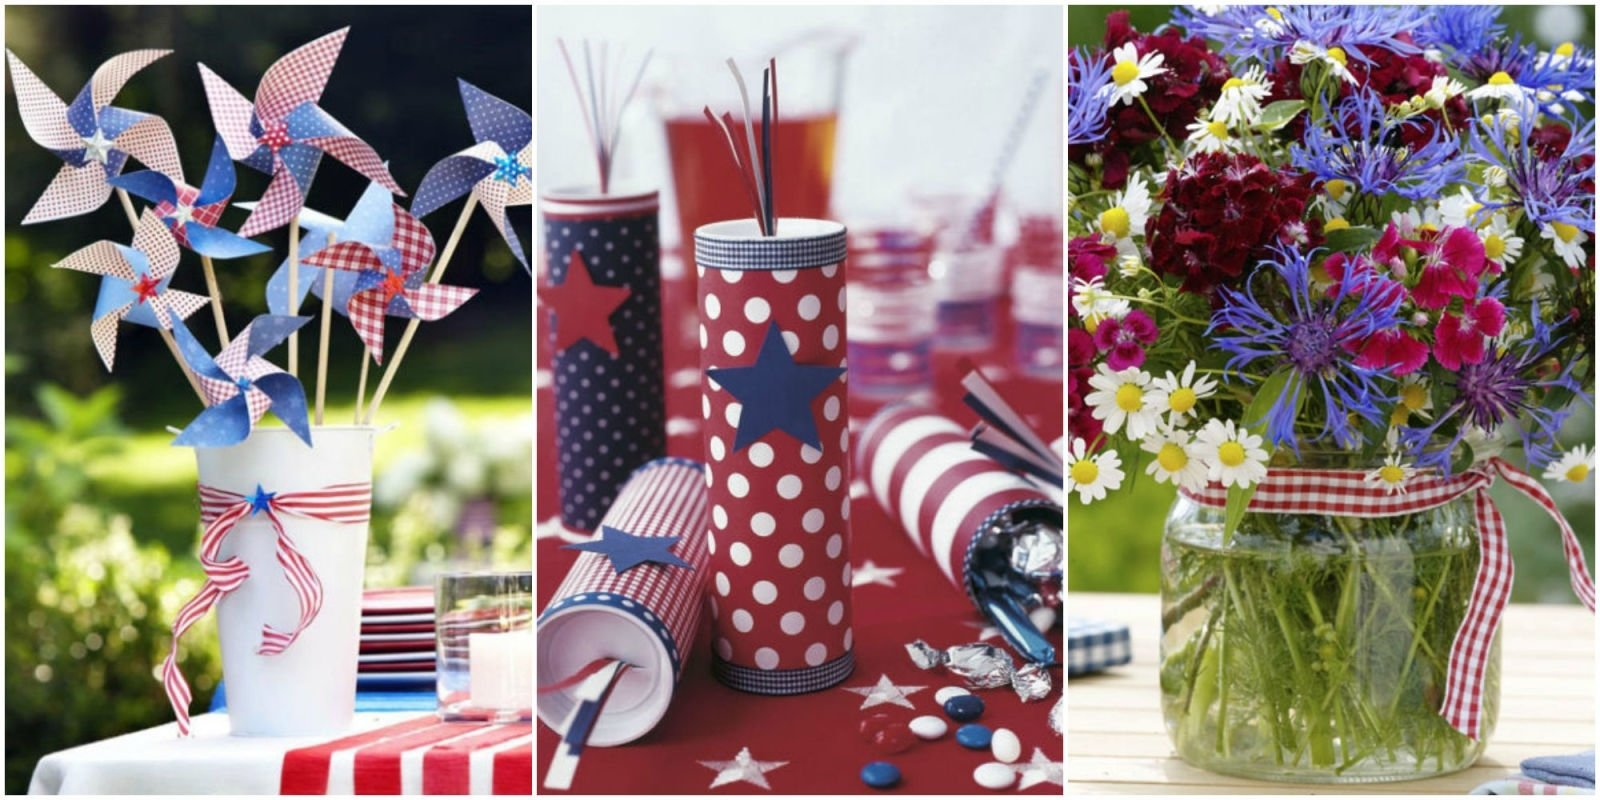 4th of july decoration İdeas – diy cute ideas